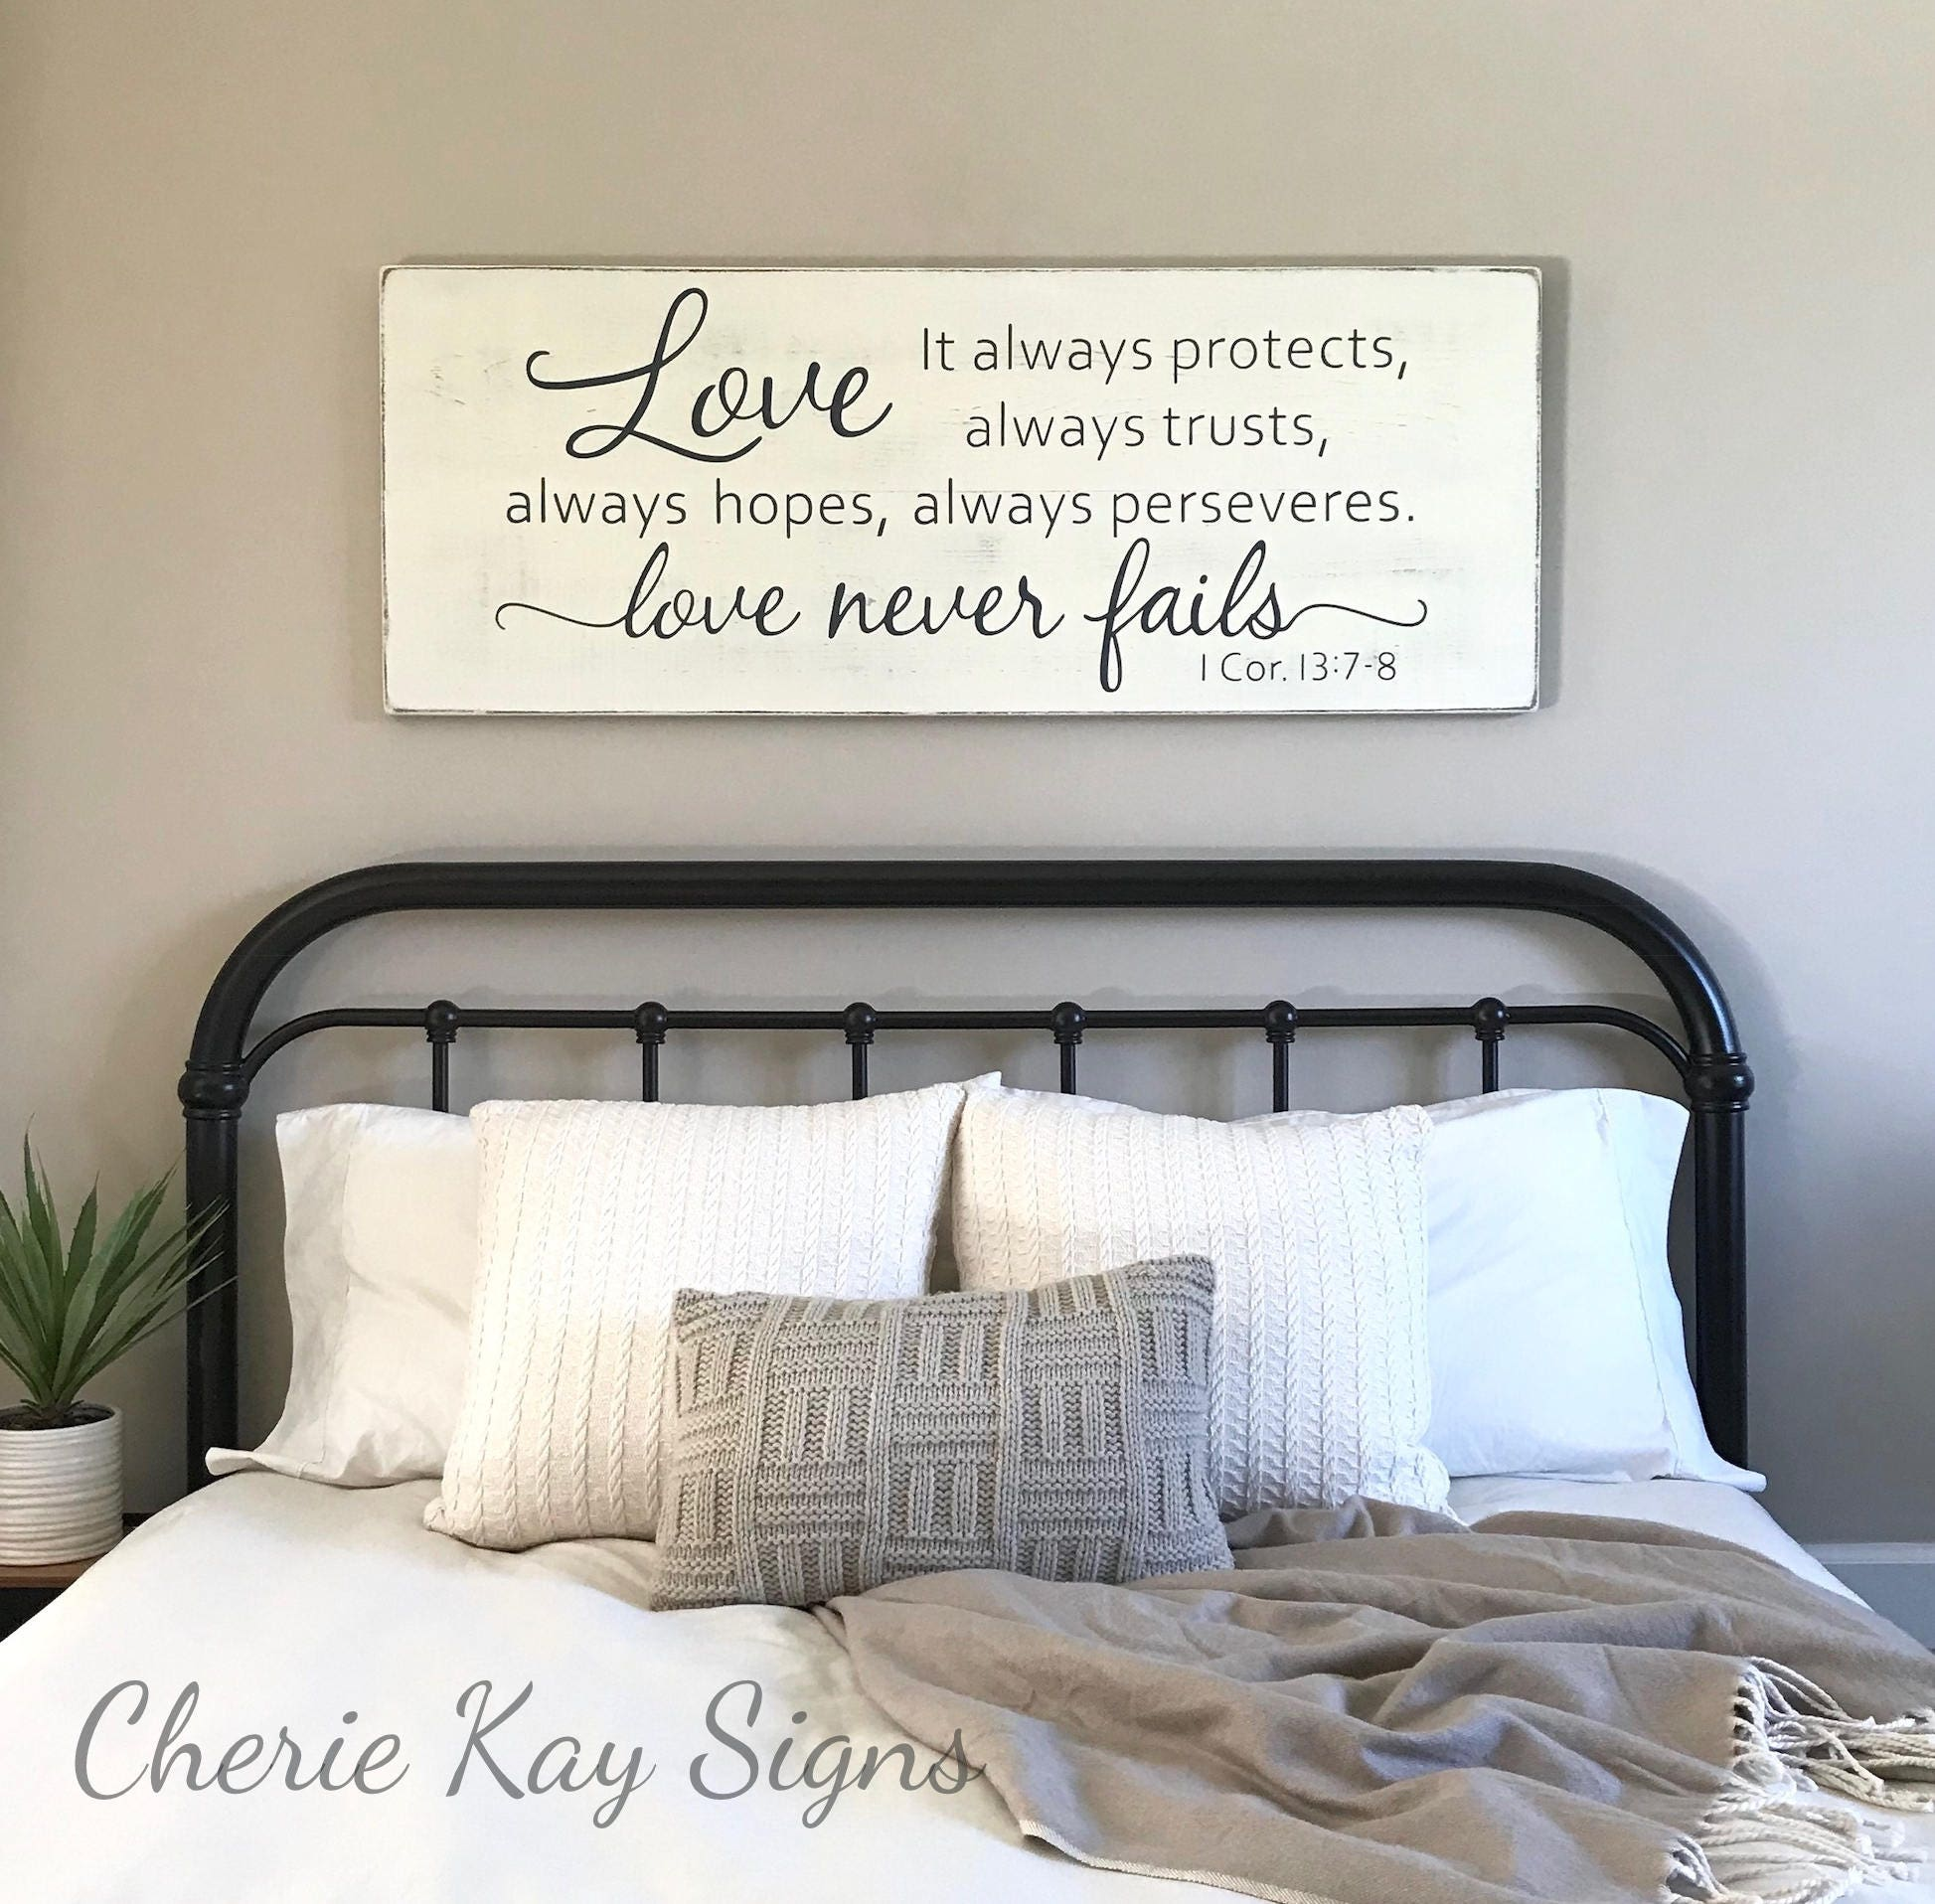 Wall Colour Inspiration: Master Bedroom Wall Decor Love Never Fails 1 Corinthians